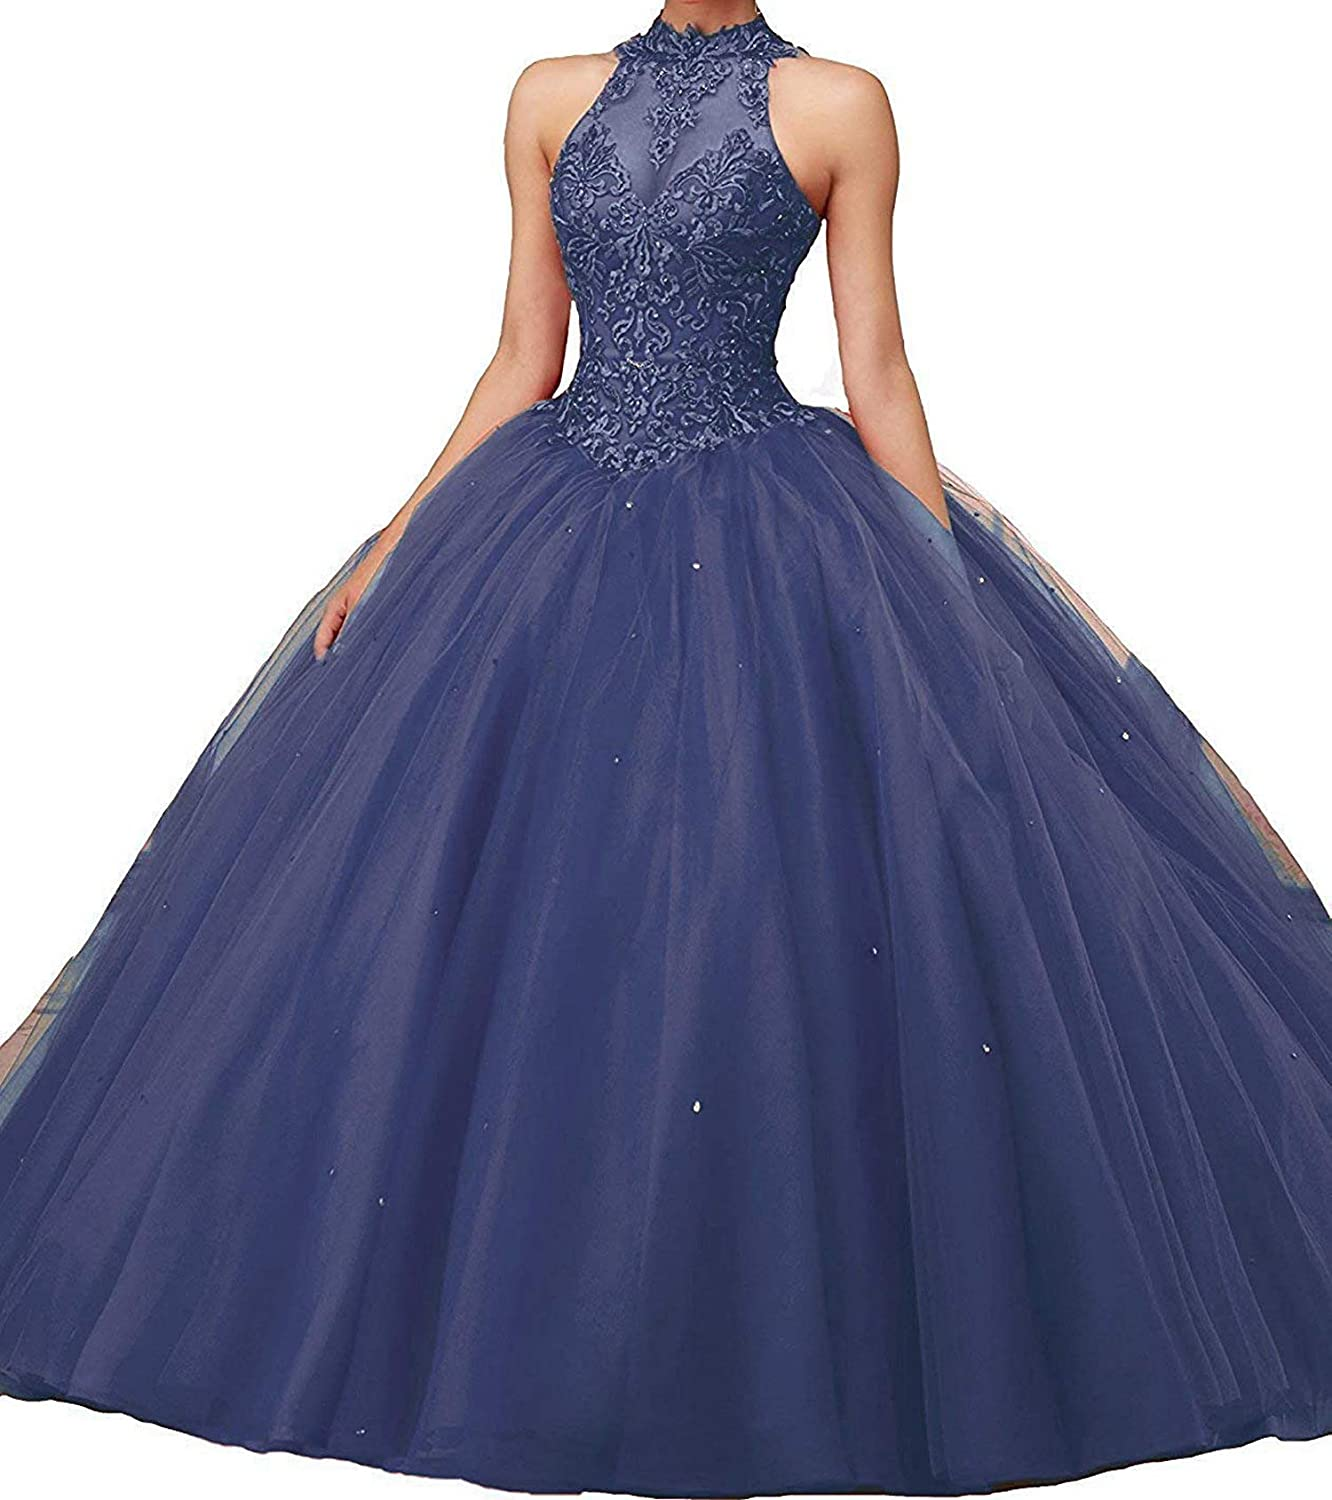 Falydal Women's Halter Applique Beaded Ball Gown Quinceanera Prom Dress